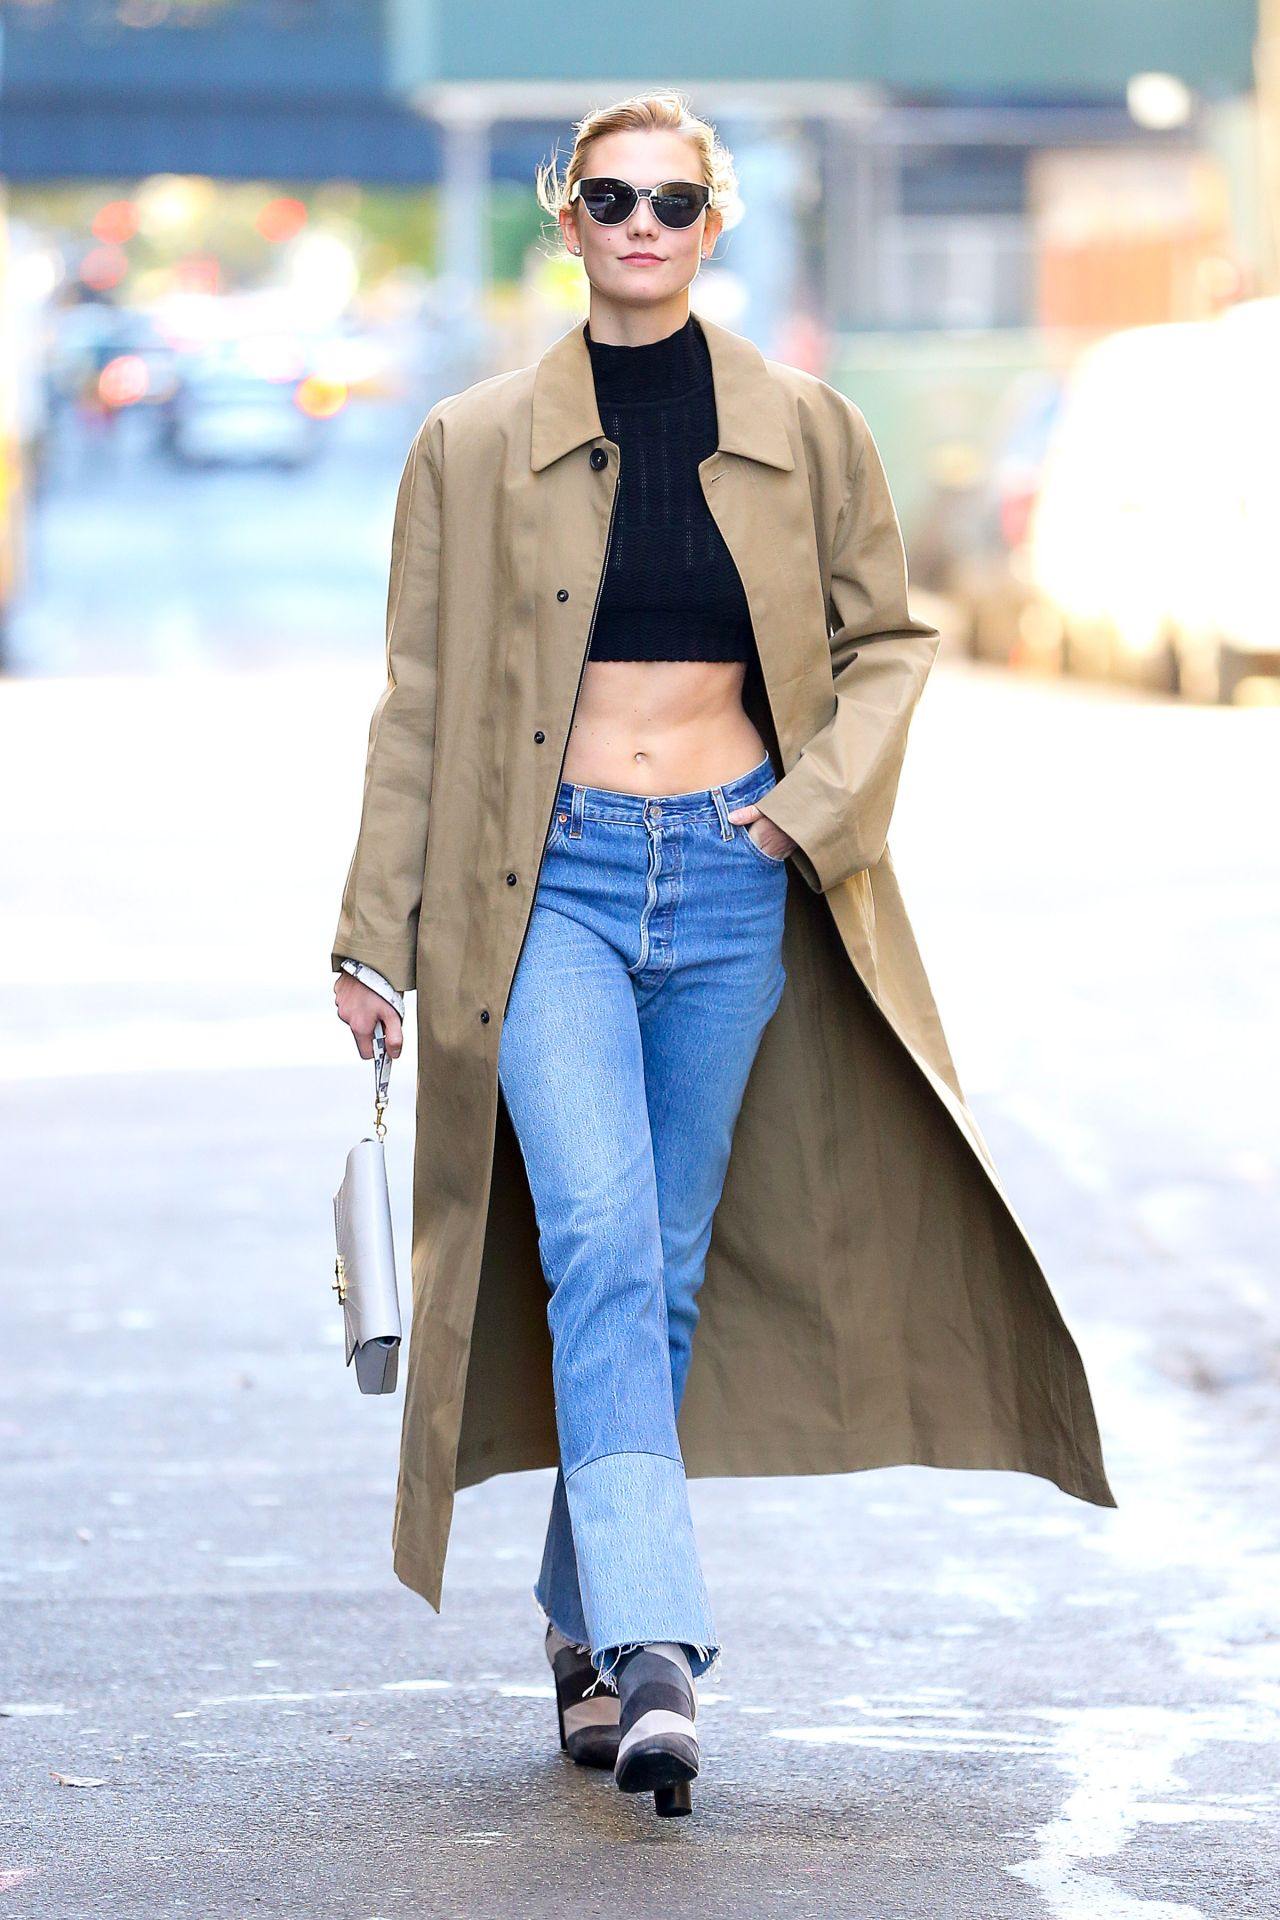 Communication on this topic: Glass magazine, karlie-kloss-out-in-nyc-282019/